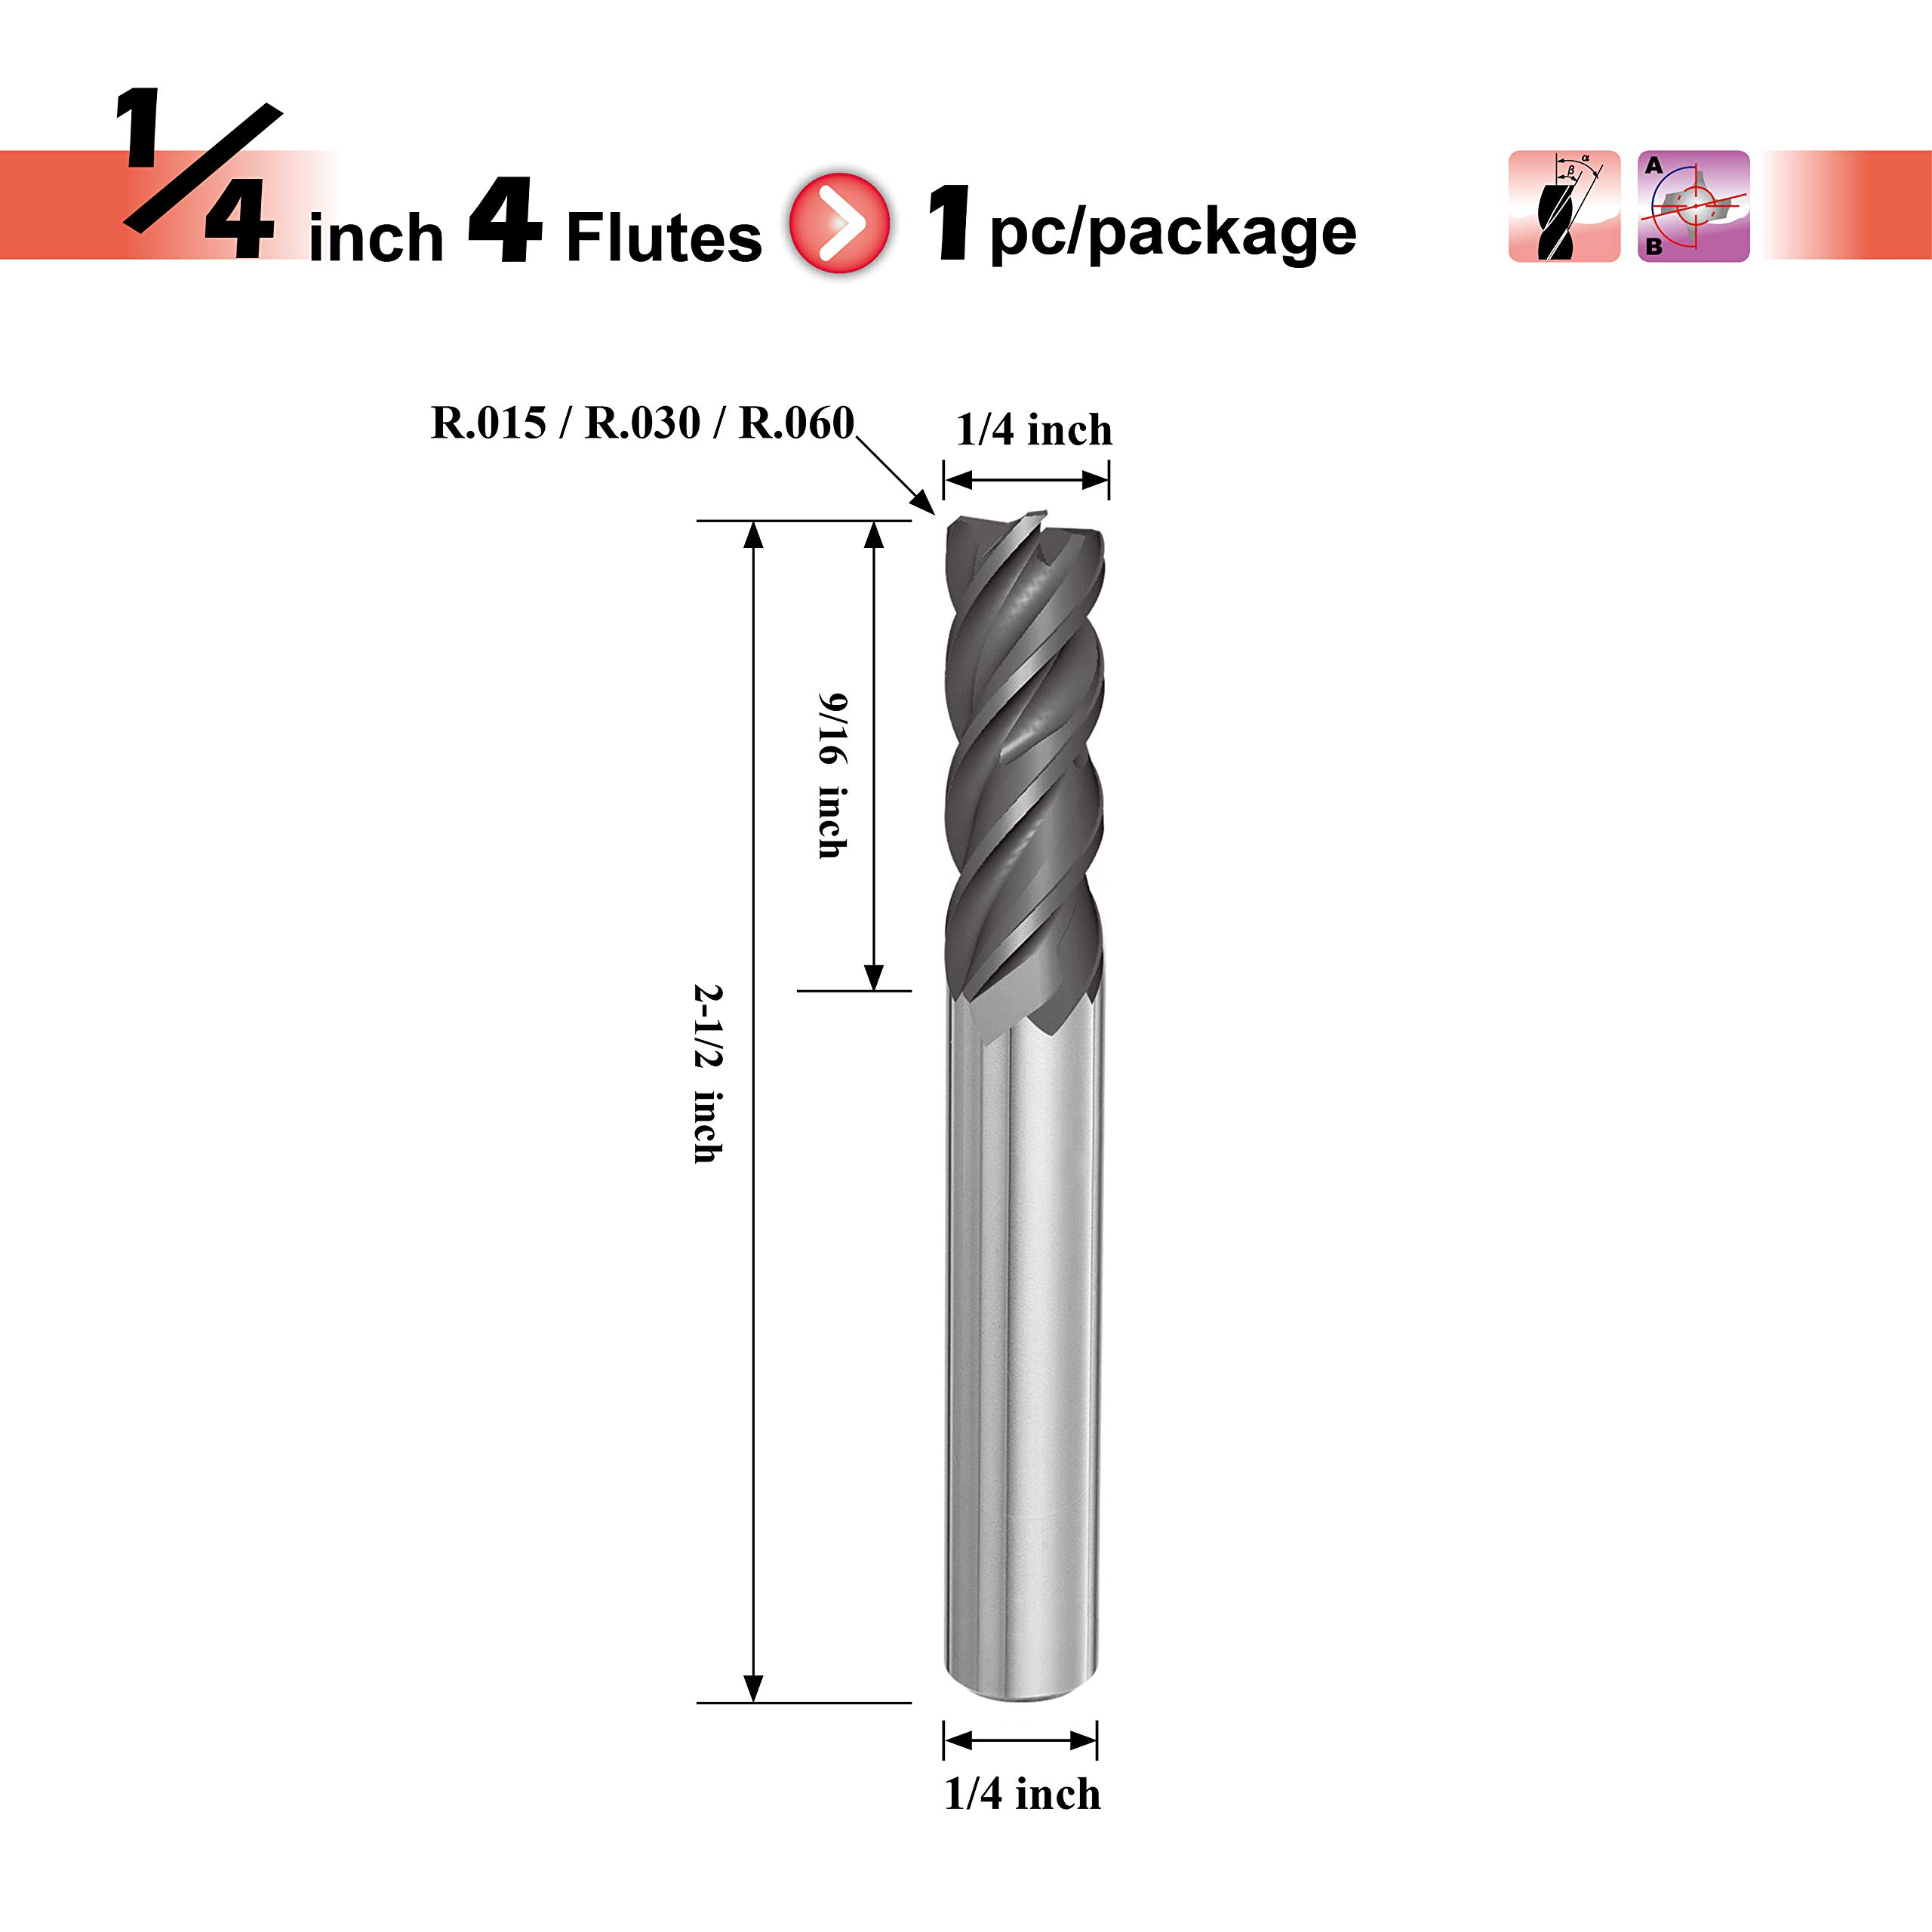 SPEED TIGER IPVR Carbide Corner Radius End Mill for Titanium - Unequal Flute Spacing and Helix Design - 4 Flute - IPVR1T1/4''0.06''4 (1 Piece, R0.06, 1/4'') by SPEED TIGER